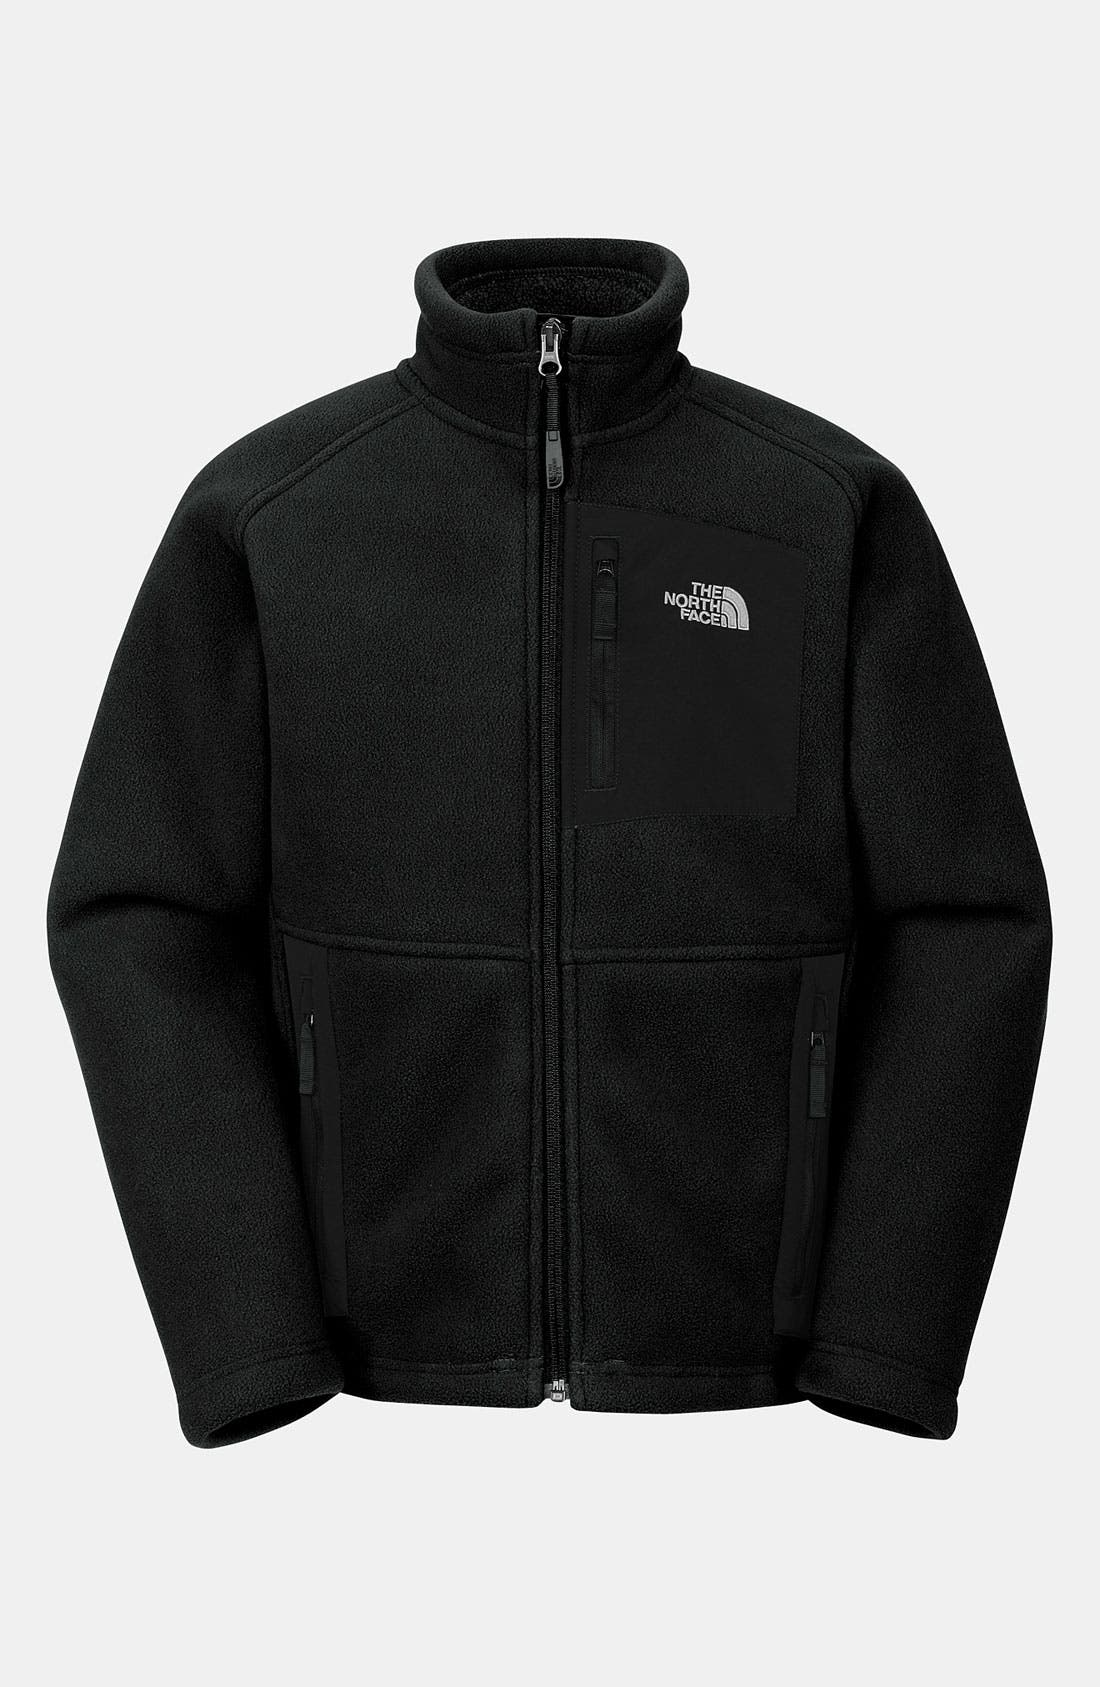 Alternate Image 1 Selected - The North Face 'Hetchy' Fleece Jacket (Big Boys)